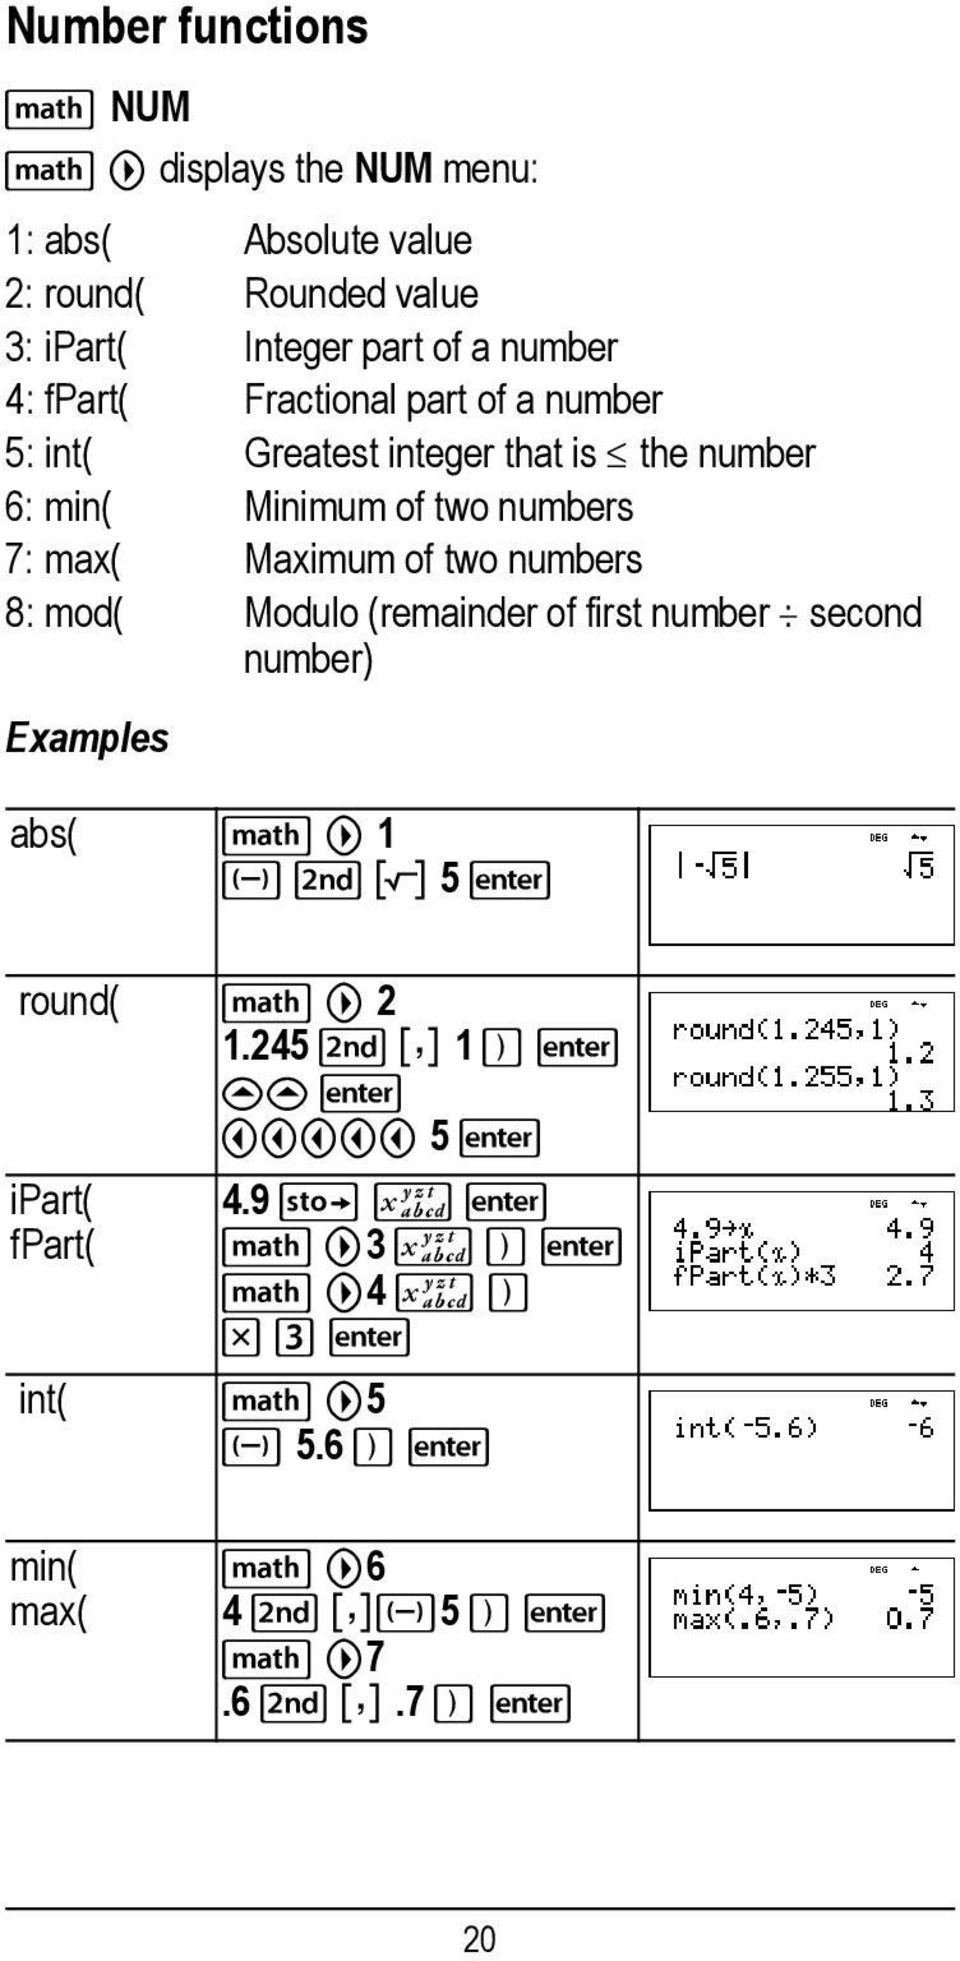 TI-36X Pro Calculator - PDF